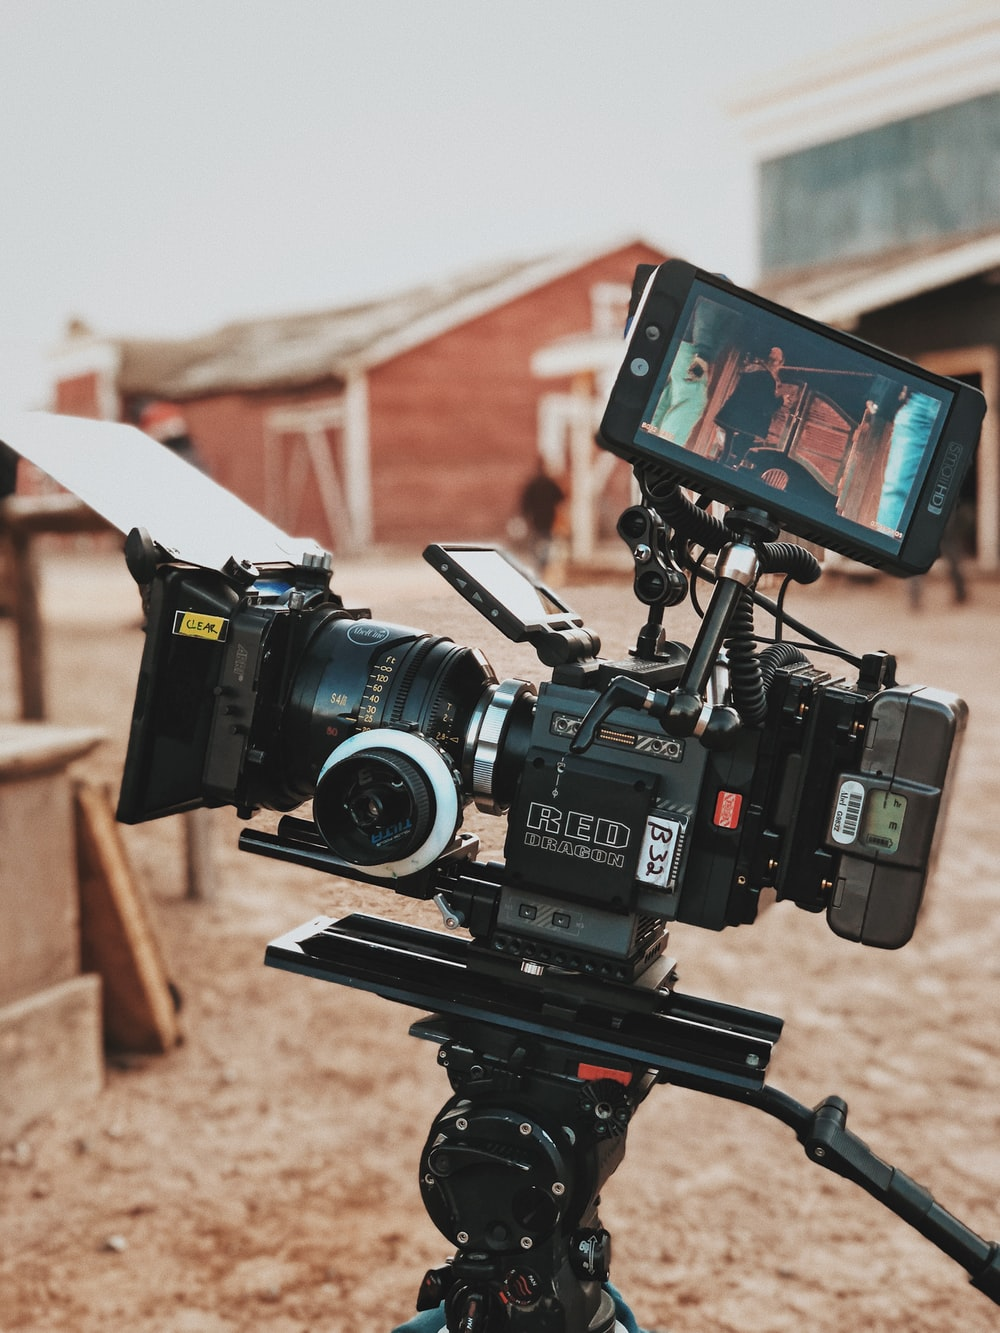 Red Dragon Camera Pictures | Download Free Images on Unsplash